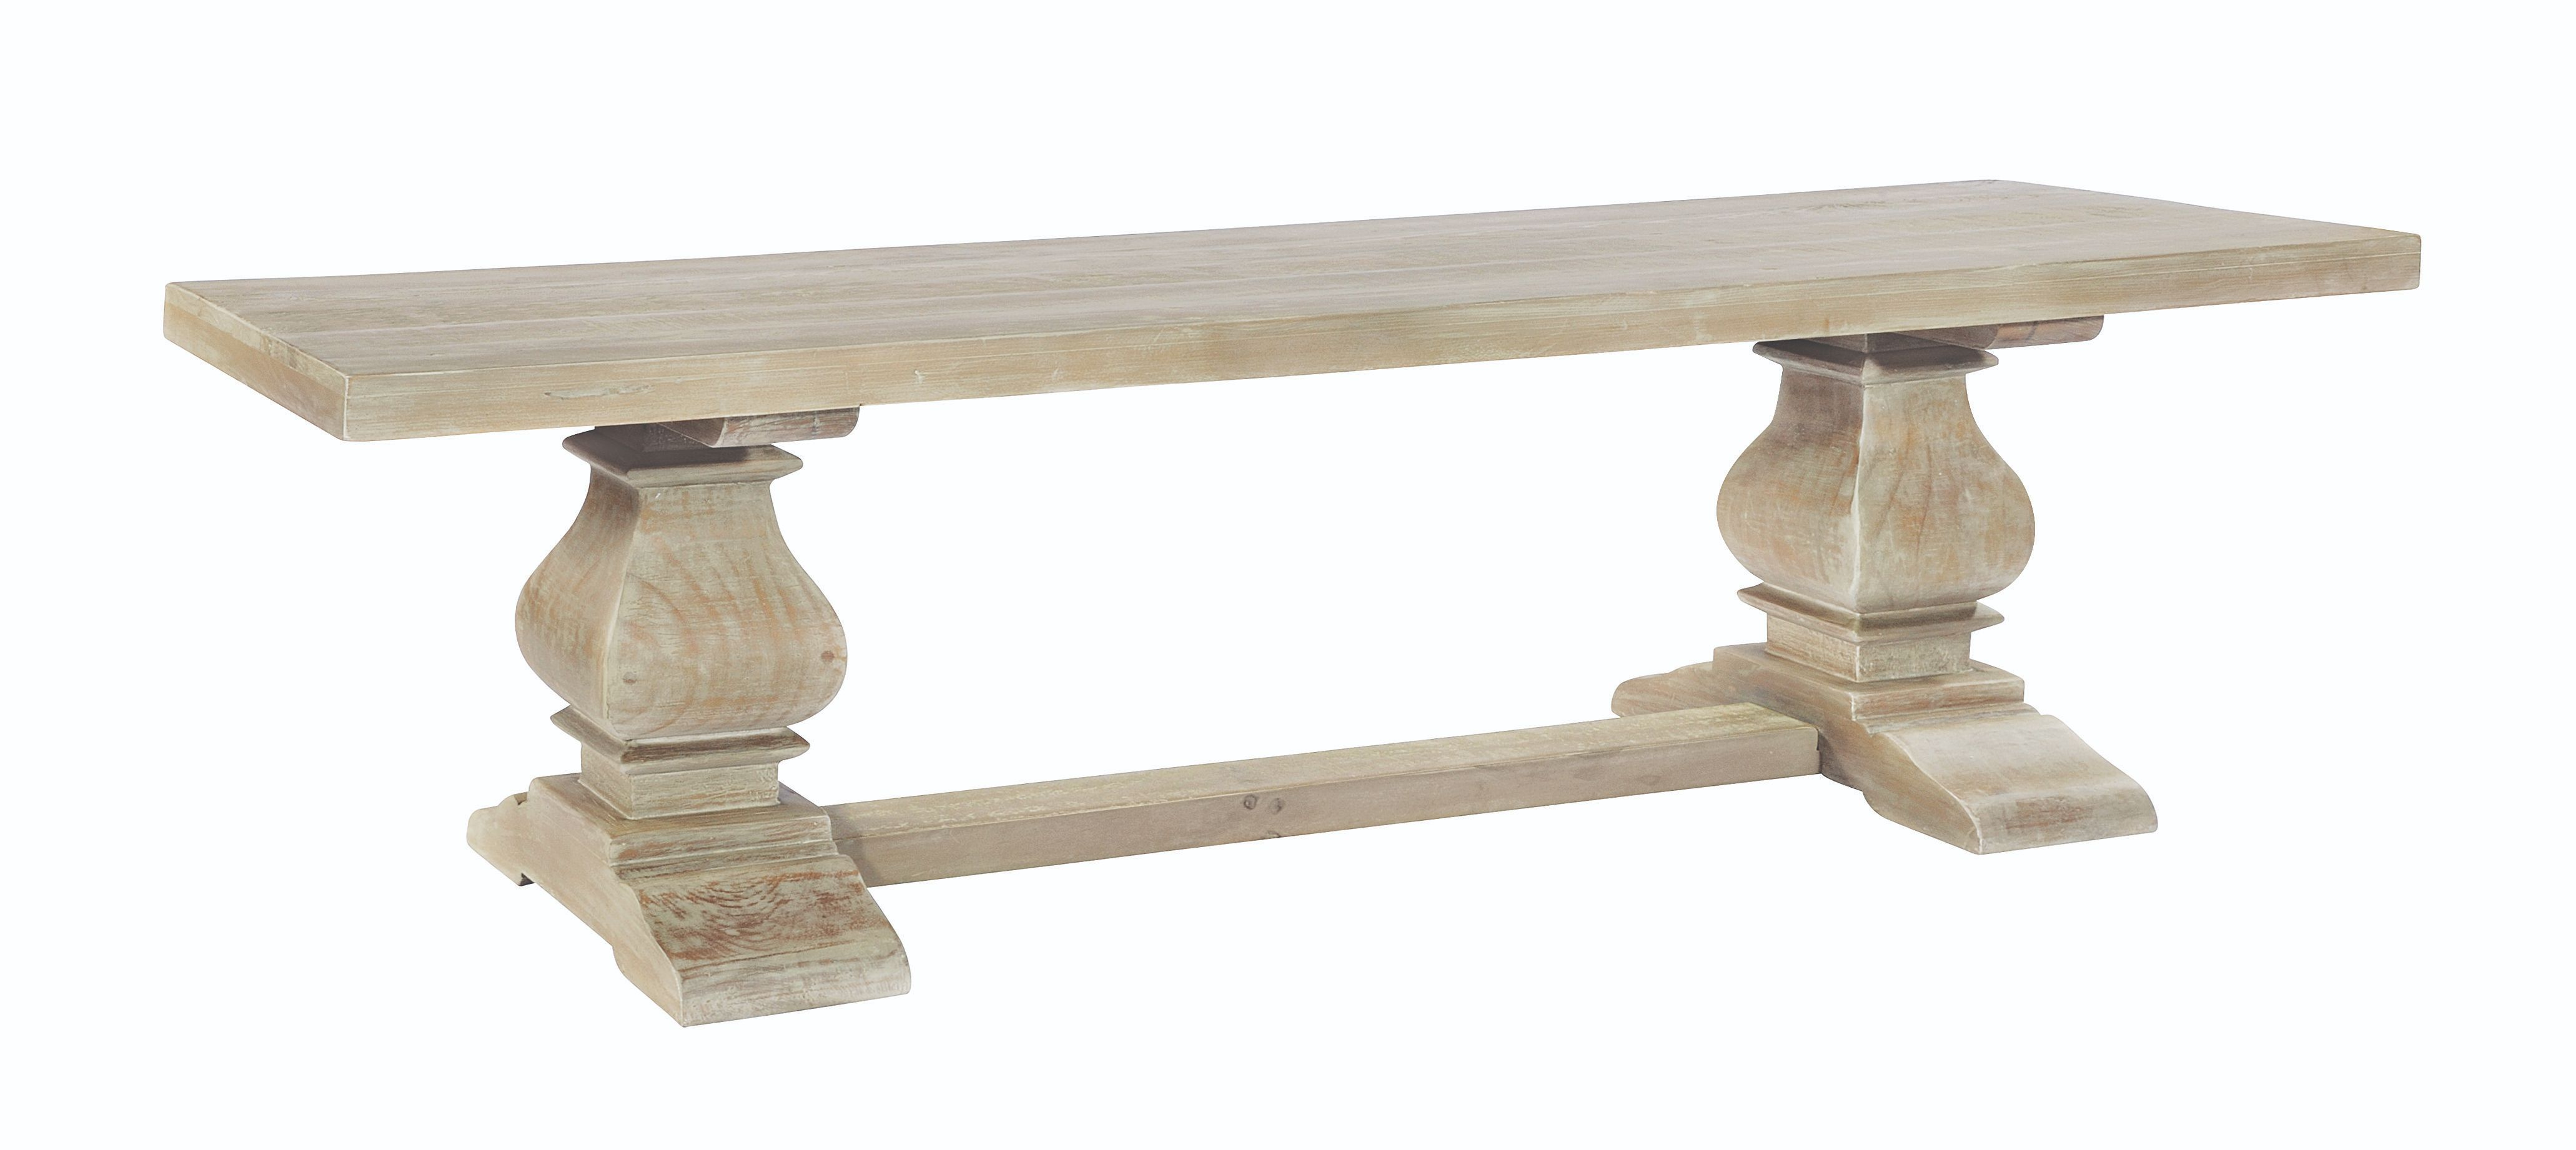 BROUGHTON DINING BENCH In Lime-washed Timber